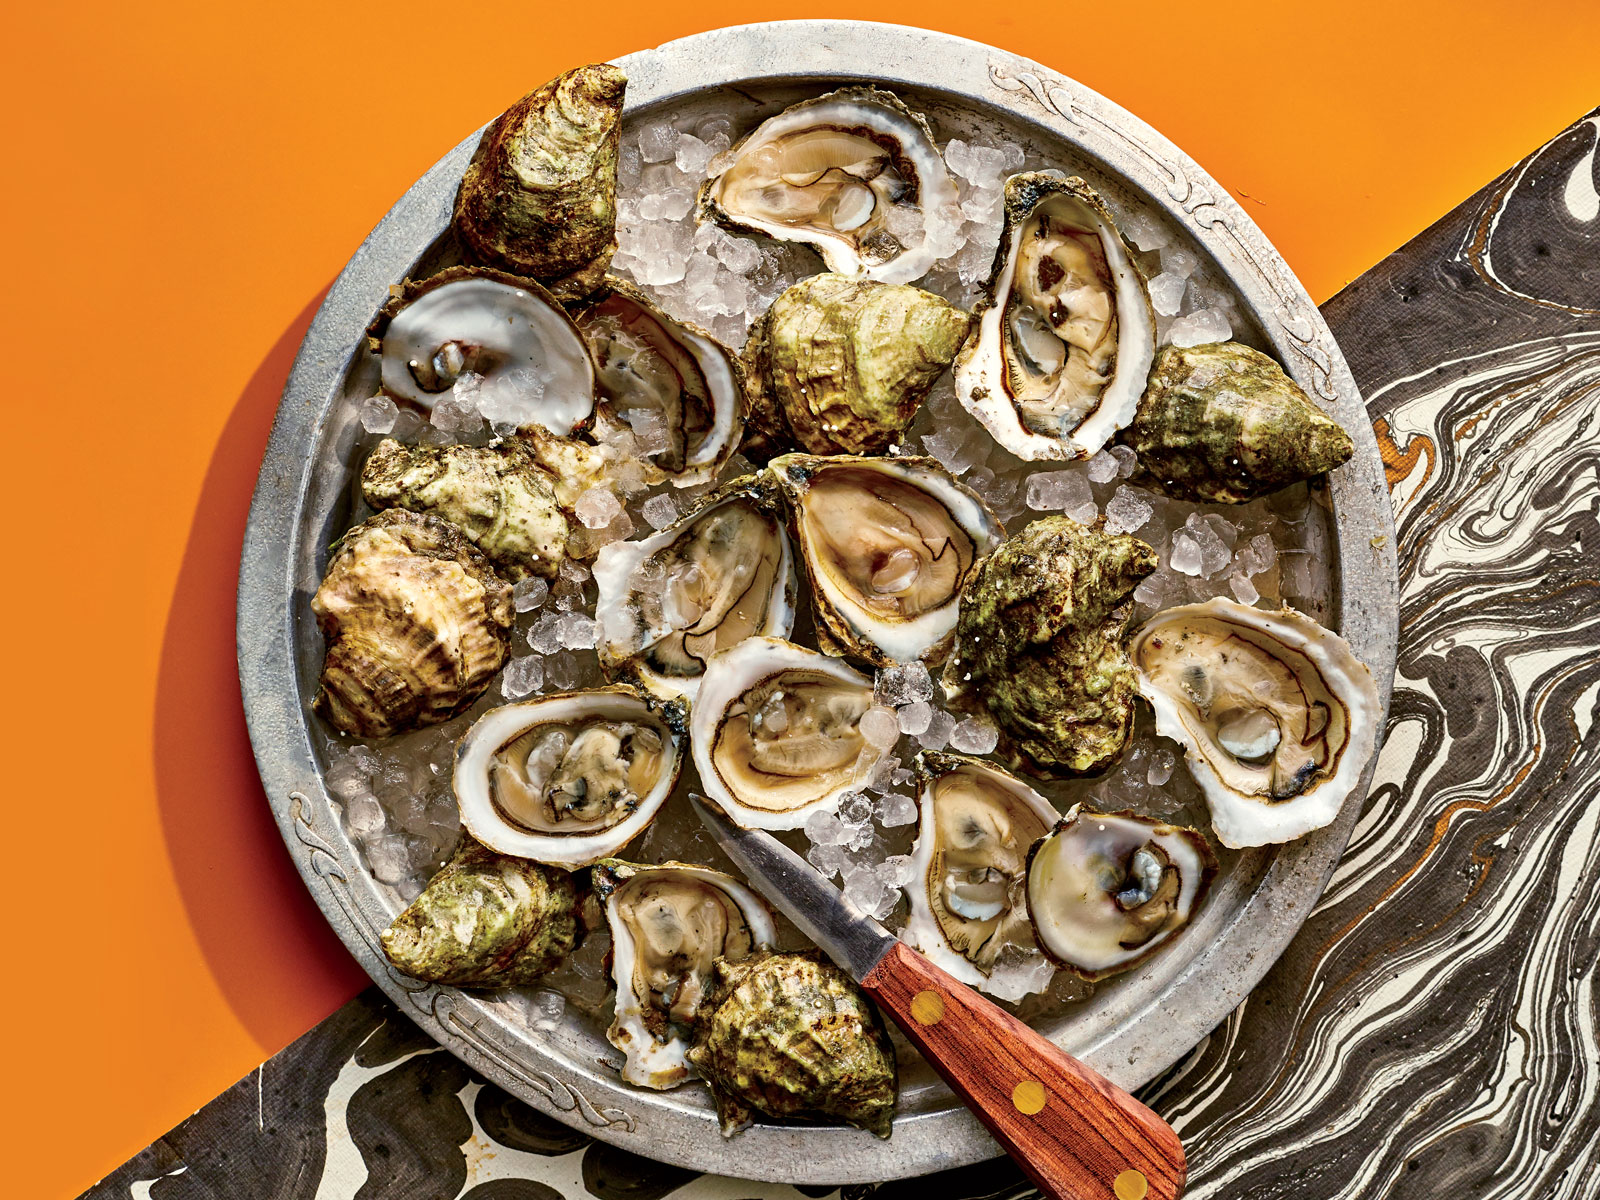 Oyster Gifts